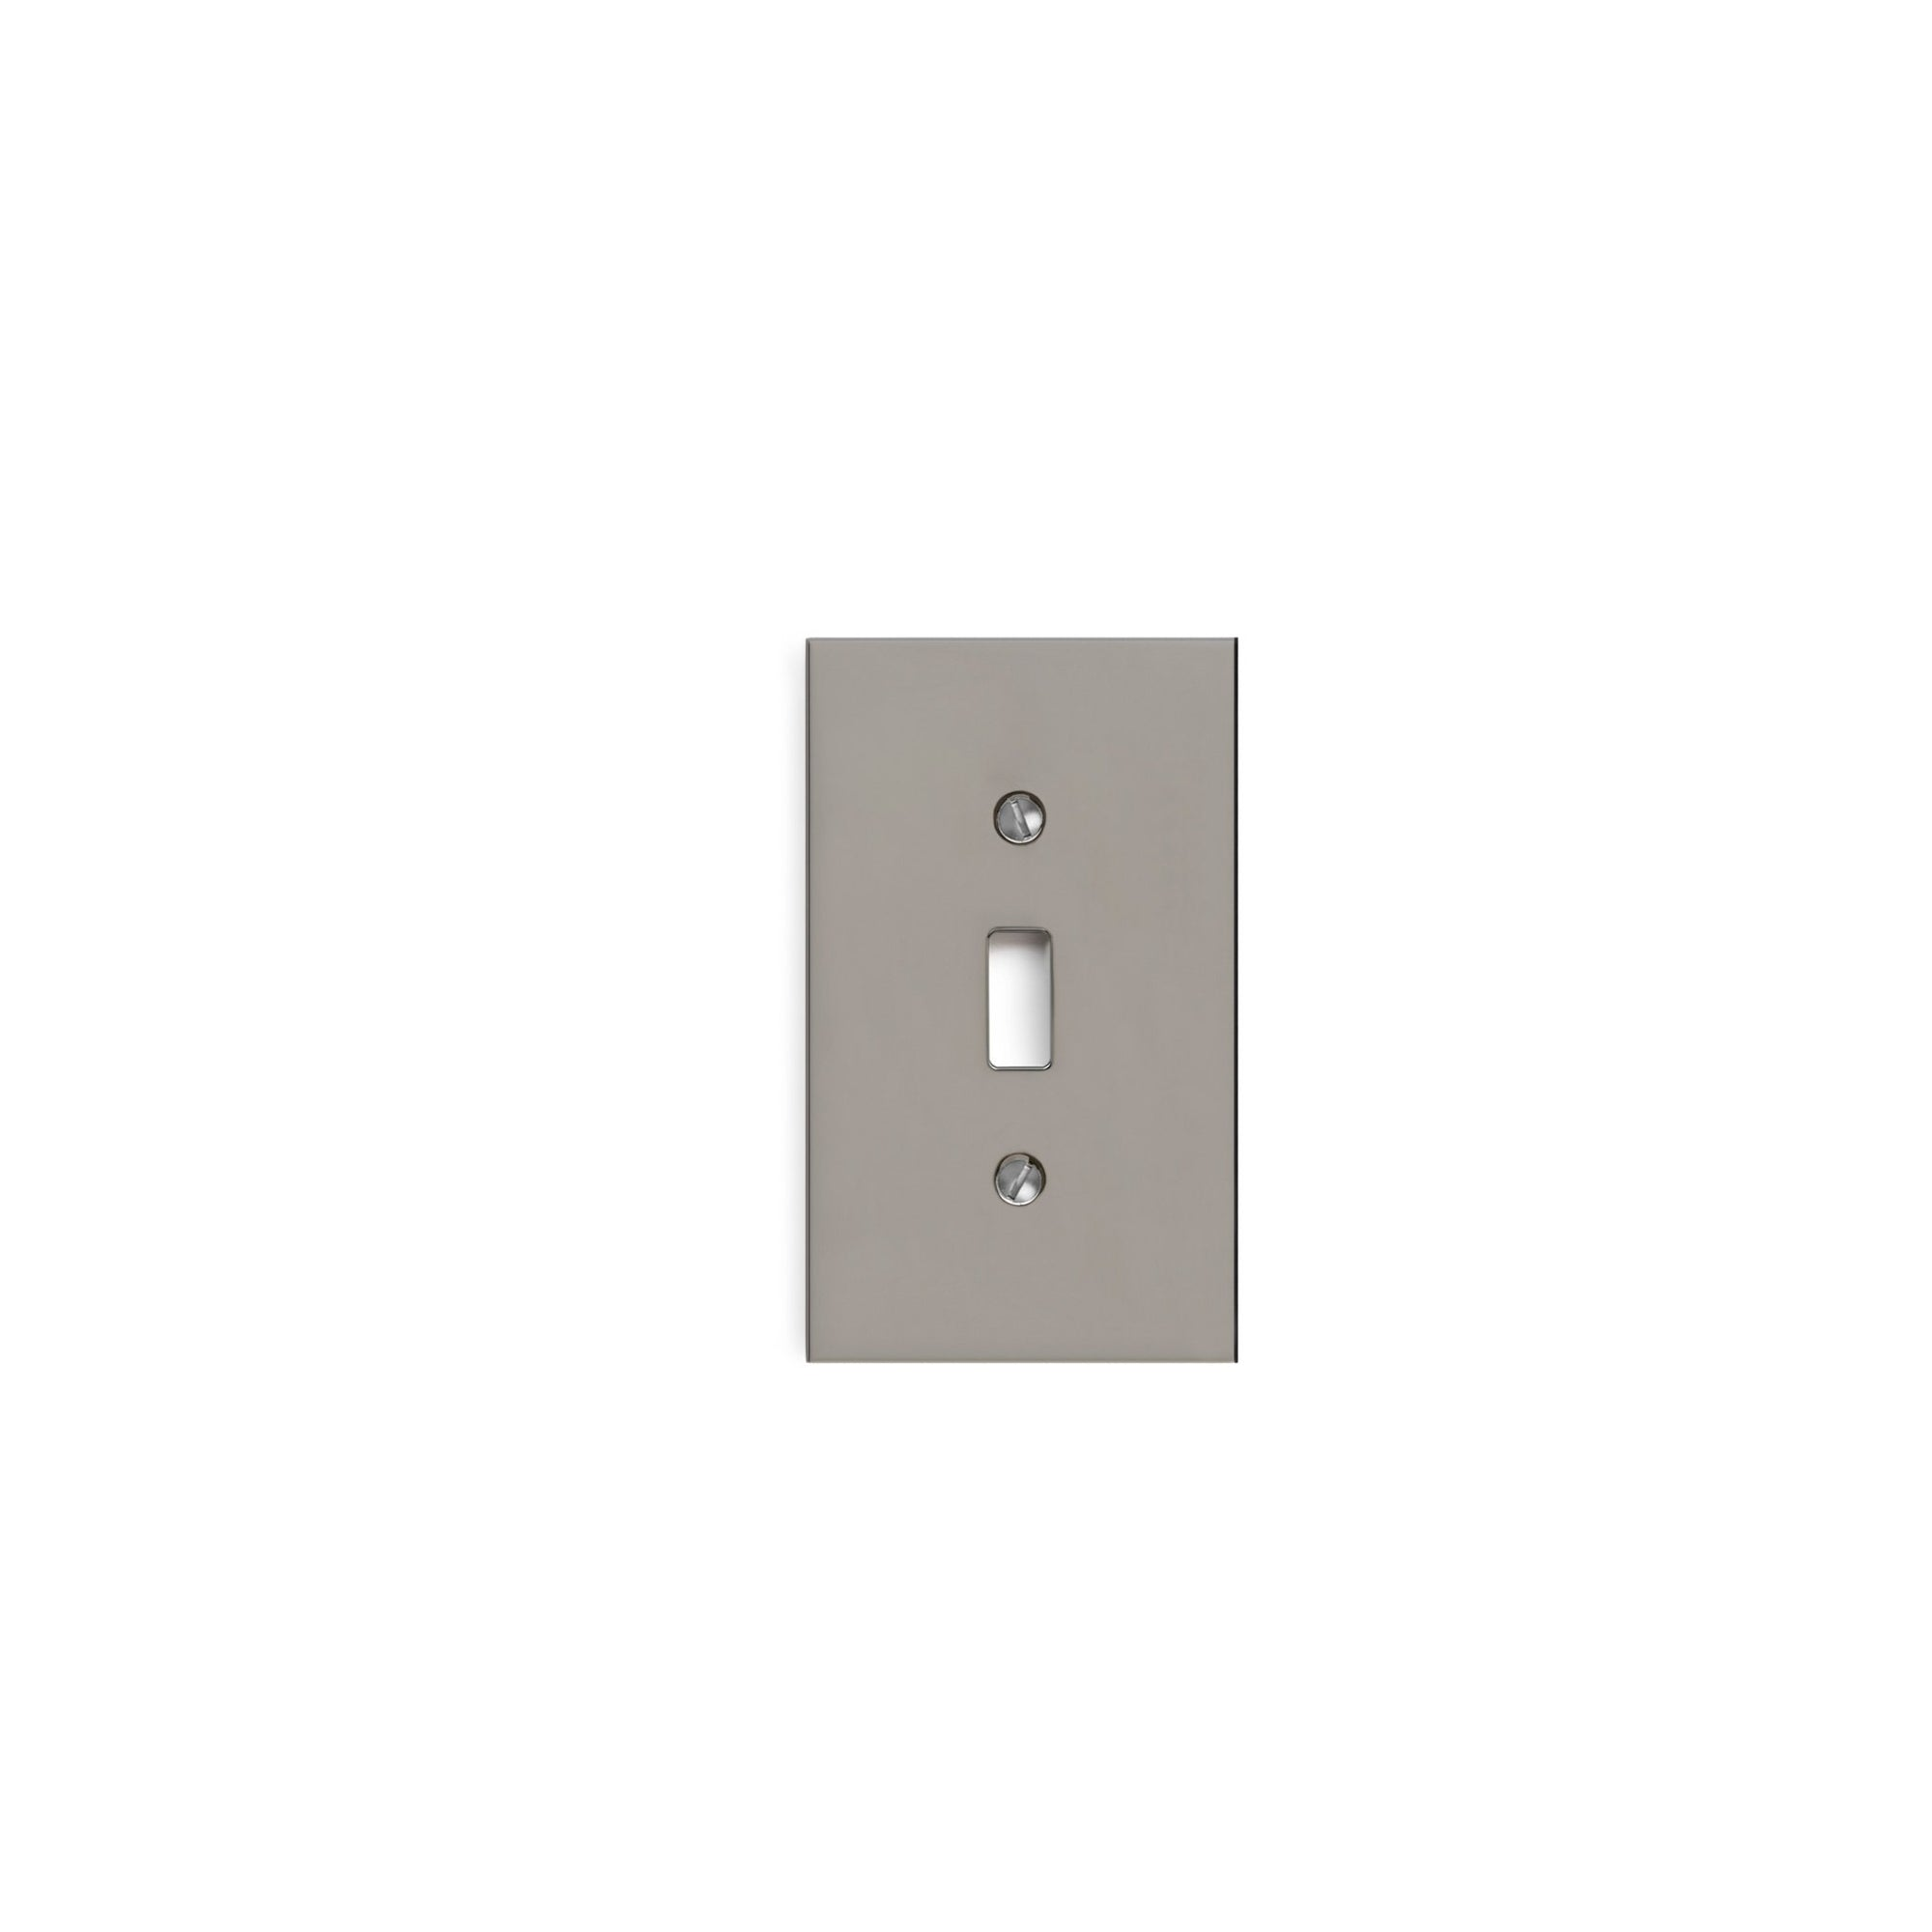 2000-SWT-CP Sherle Wagner International Modern Single Switch Plate in Polished Chrome metal finish